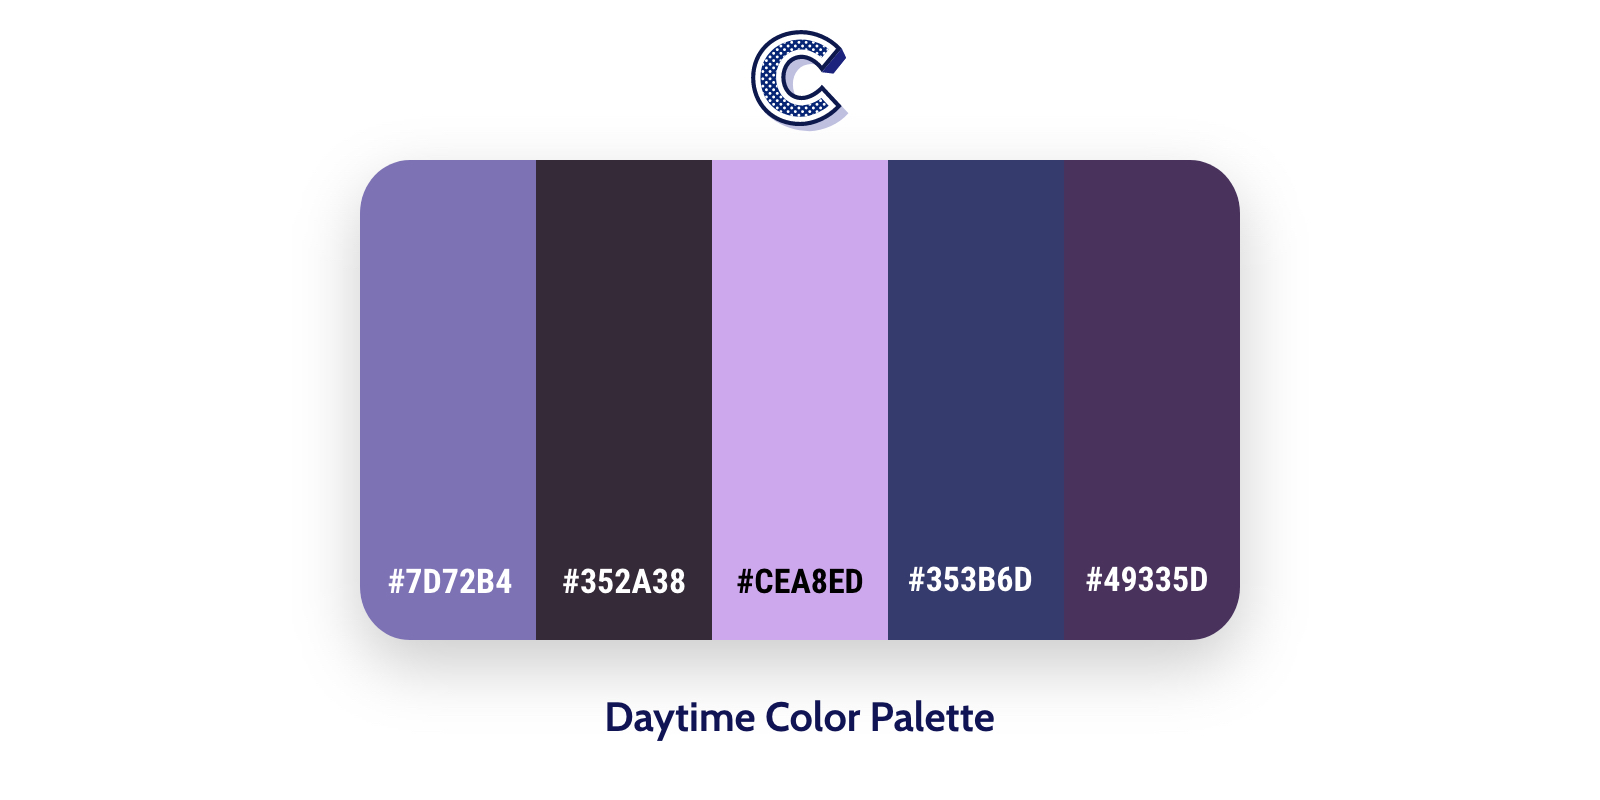 the featured image of daytime color palette